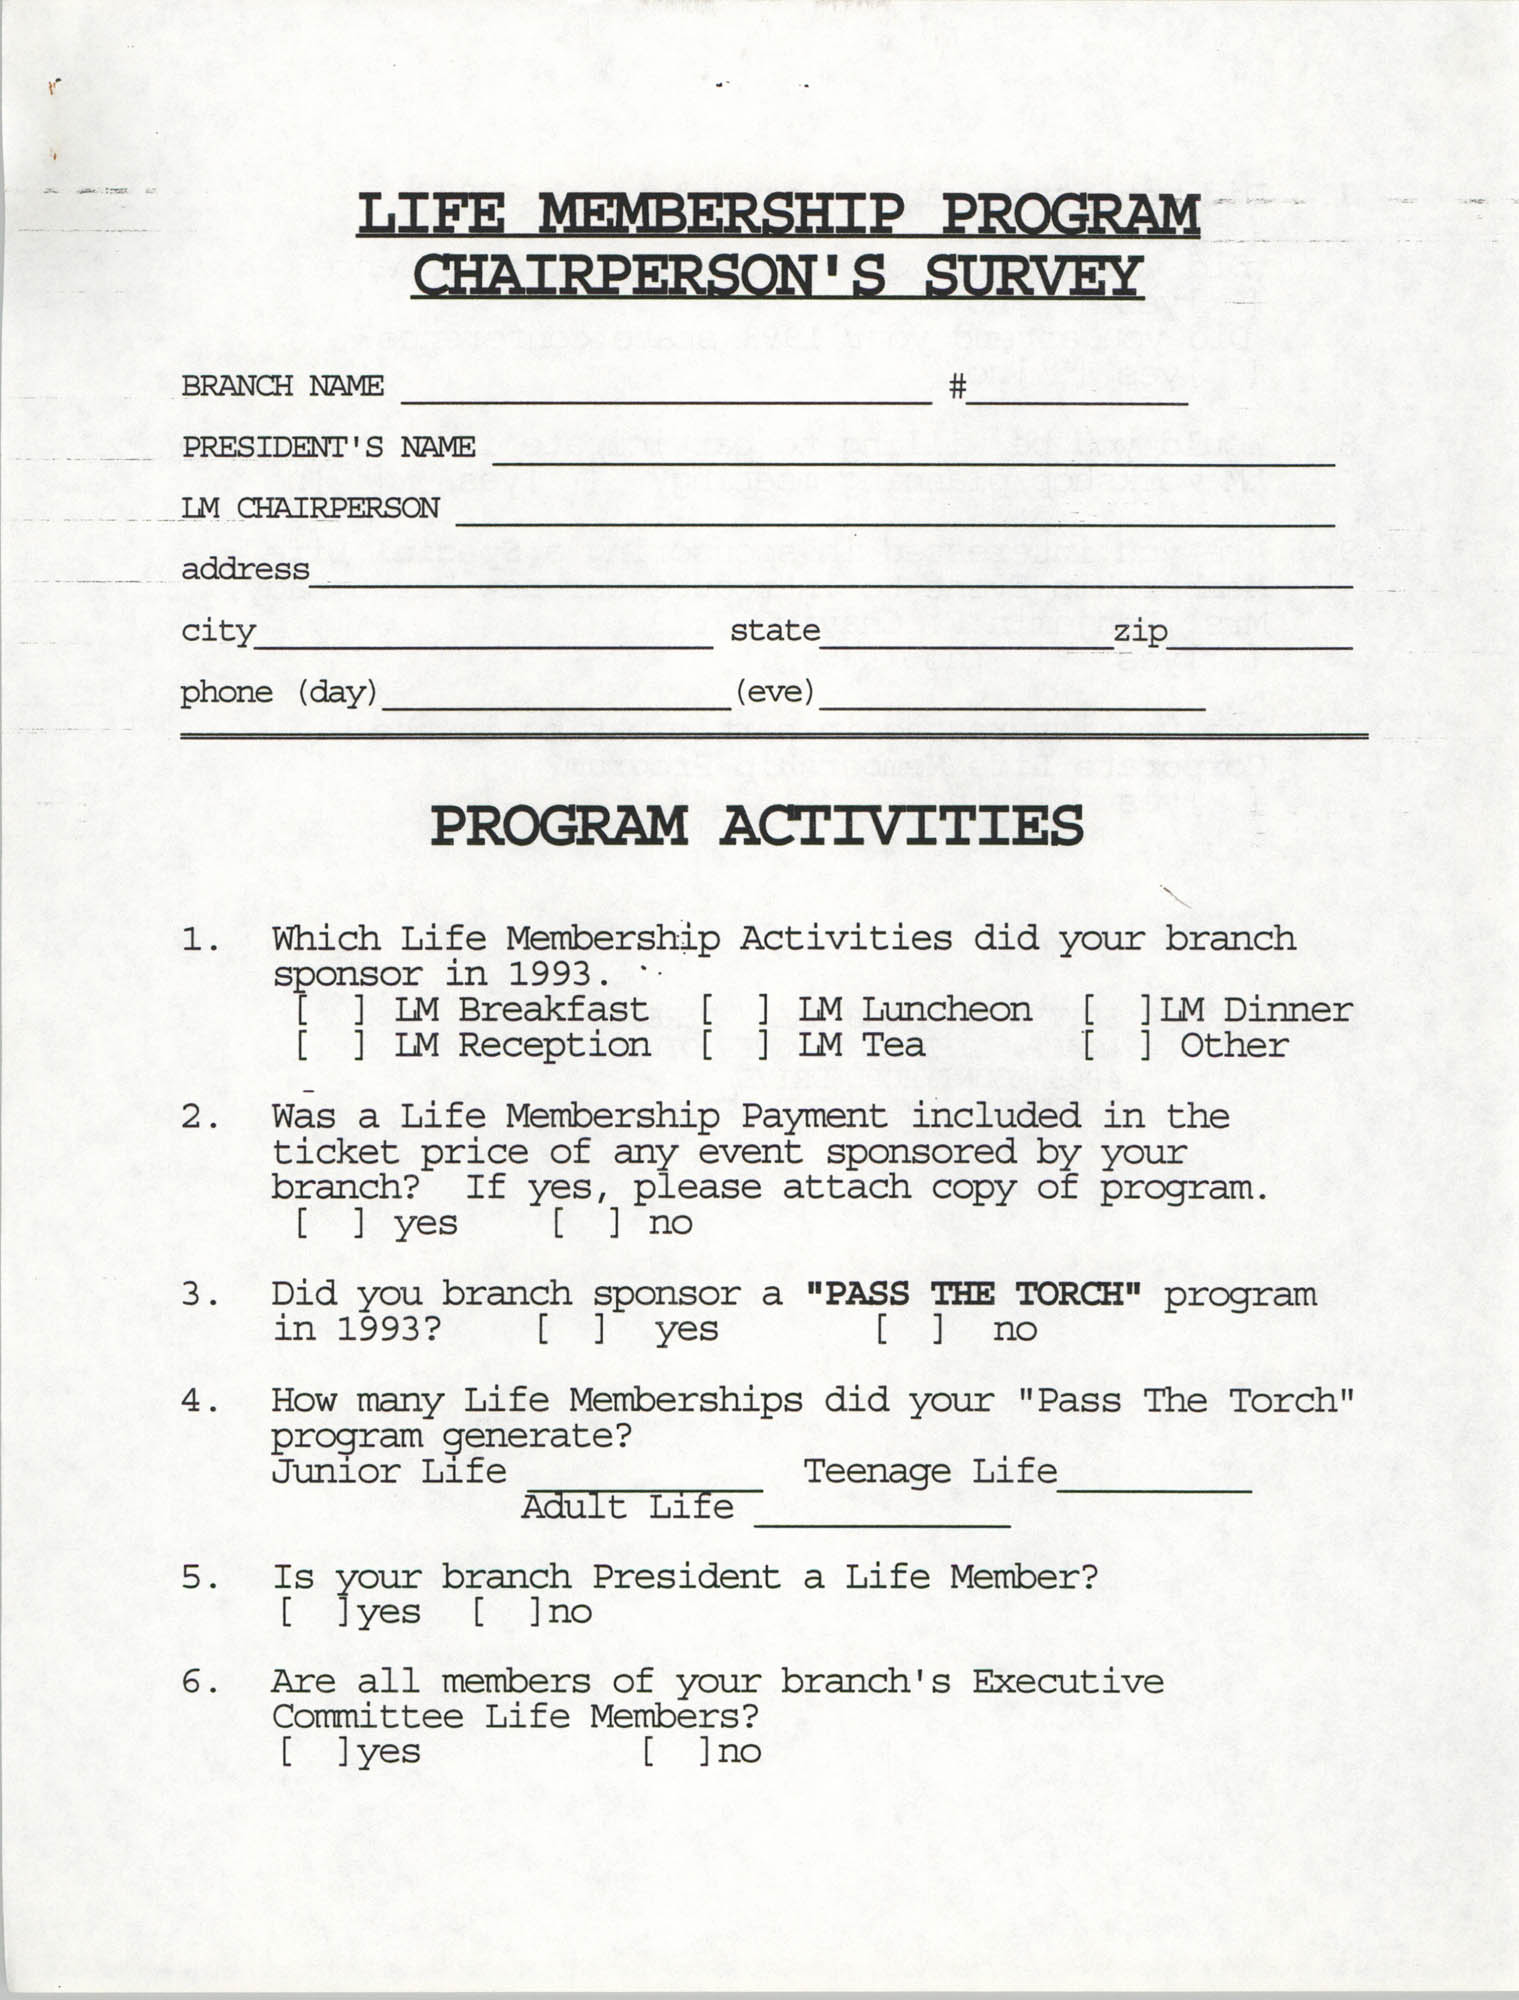 Life Membership Program, Chairperson's Survey, Page 2